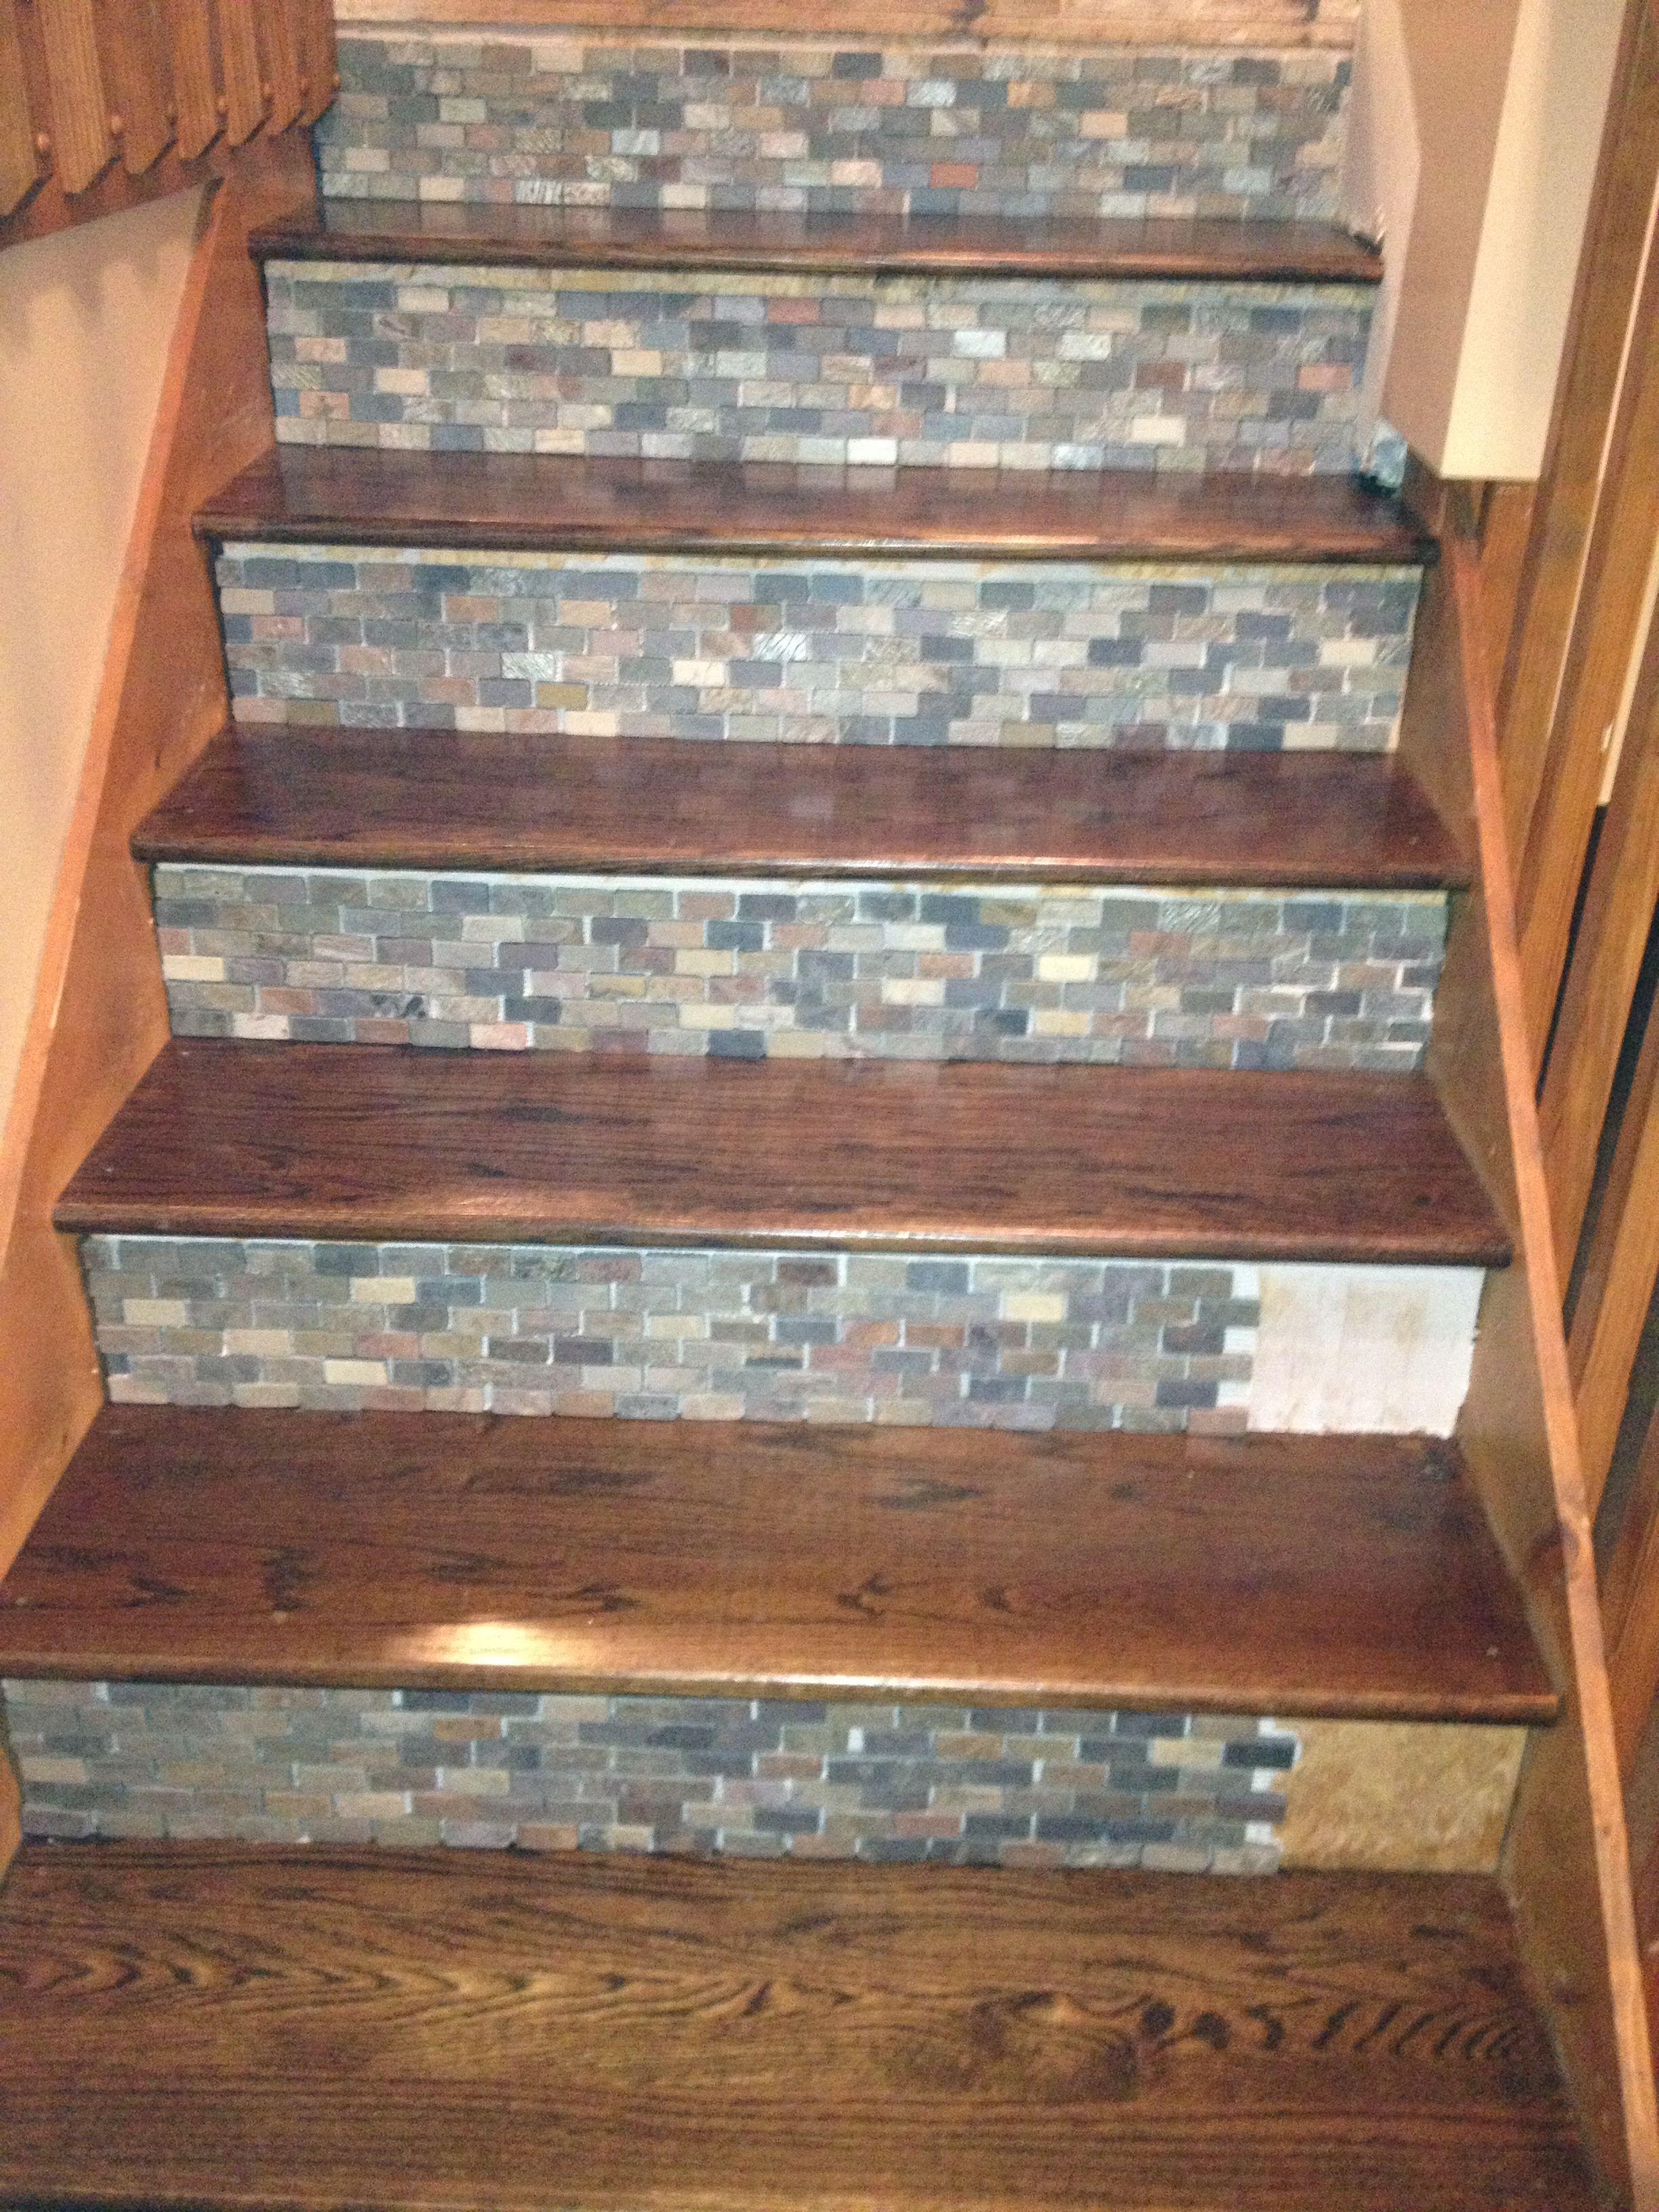 Ordinaire Stone Backsplash Tile Used On Stair Risers!!